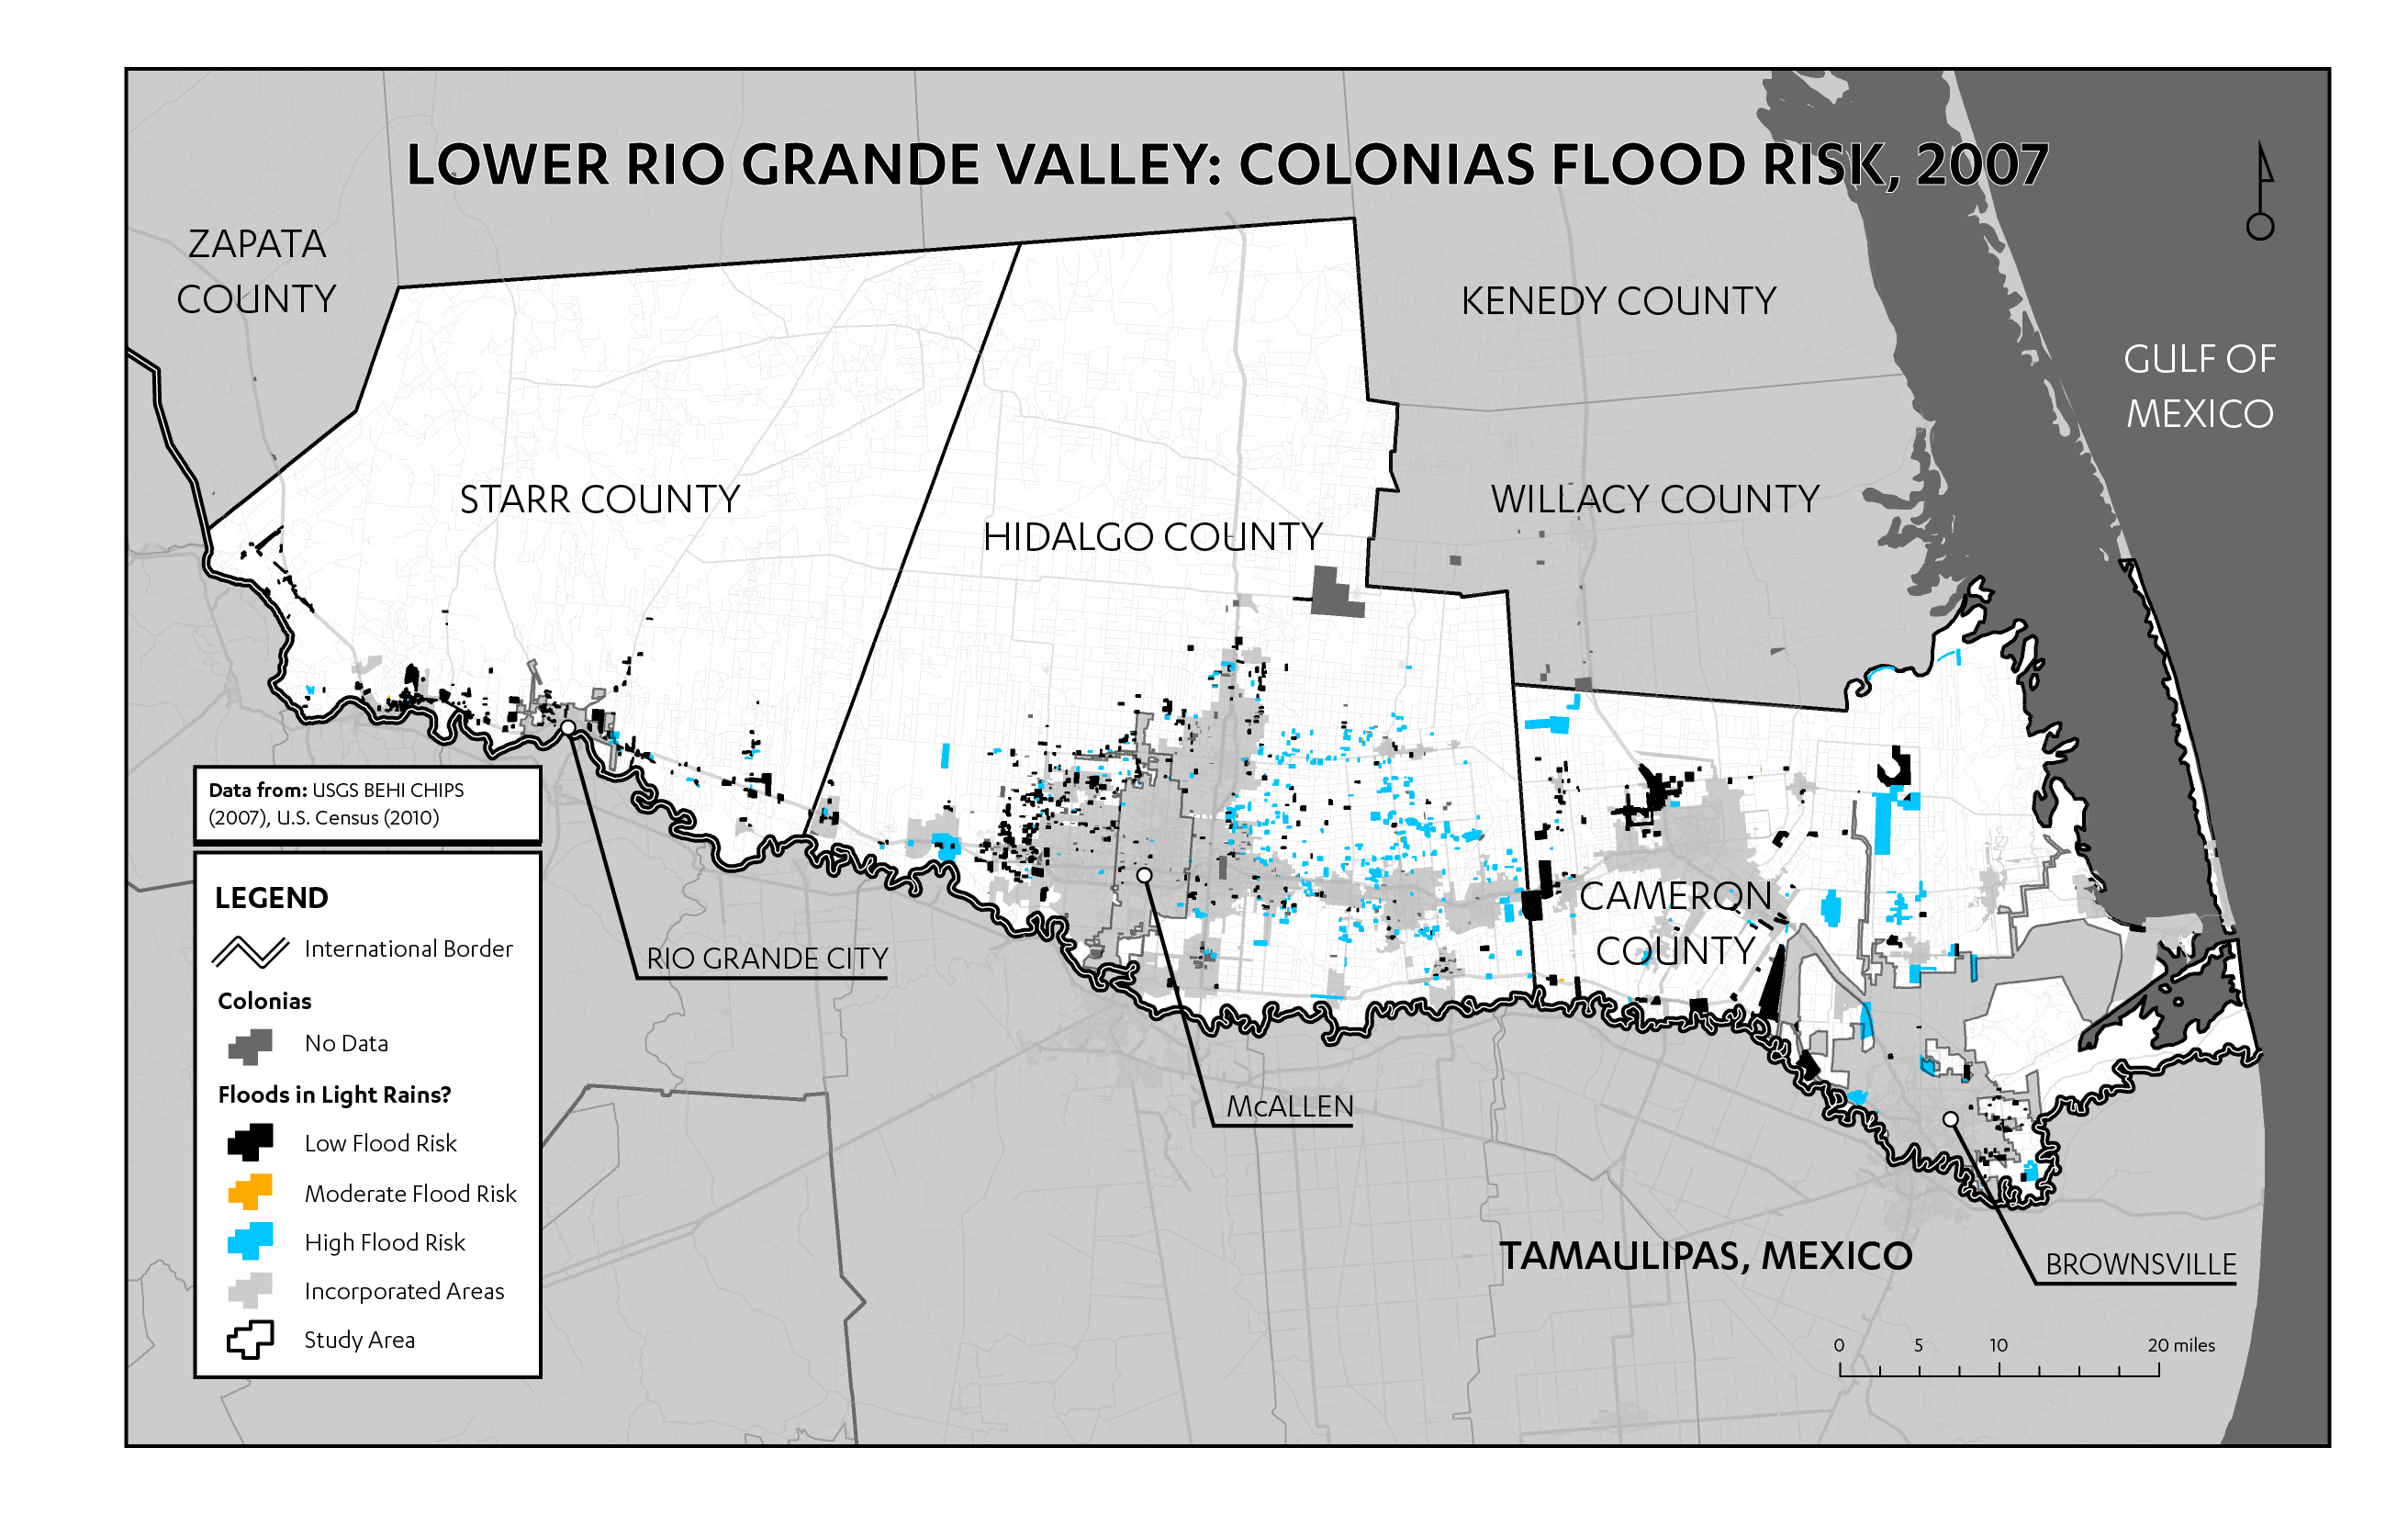 Figure 5: Map of flood-prone colonias in the Lower Rio Grande Valley (data from CHIPS 2007). This vulnerability to flooding is dangerously exacerbated during hurricanes, and due to the Lower Rio Grande Valley's proximity to the Gulf of Mexico, such storms are not uncommon. The last major hurricane in the region, Ike in 2008, was the costliest hurricane ever to hit Texas. Describing its aftermath, staff at a Hidalgo County nonprofit recalled that floodwaters from Ike remained for over a year. This emphasizes the importance of adequate stormwater systems. While hardscaping is expensive, there may be an opportunity to use creative softscaping to safely redirect pooling waters.